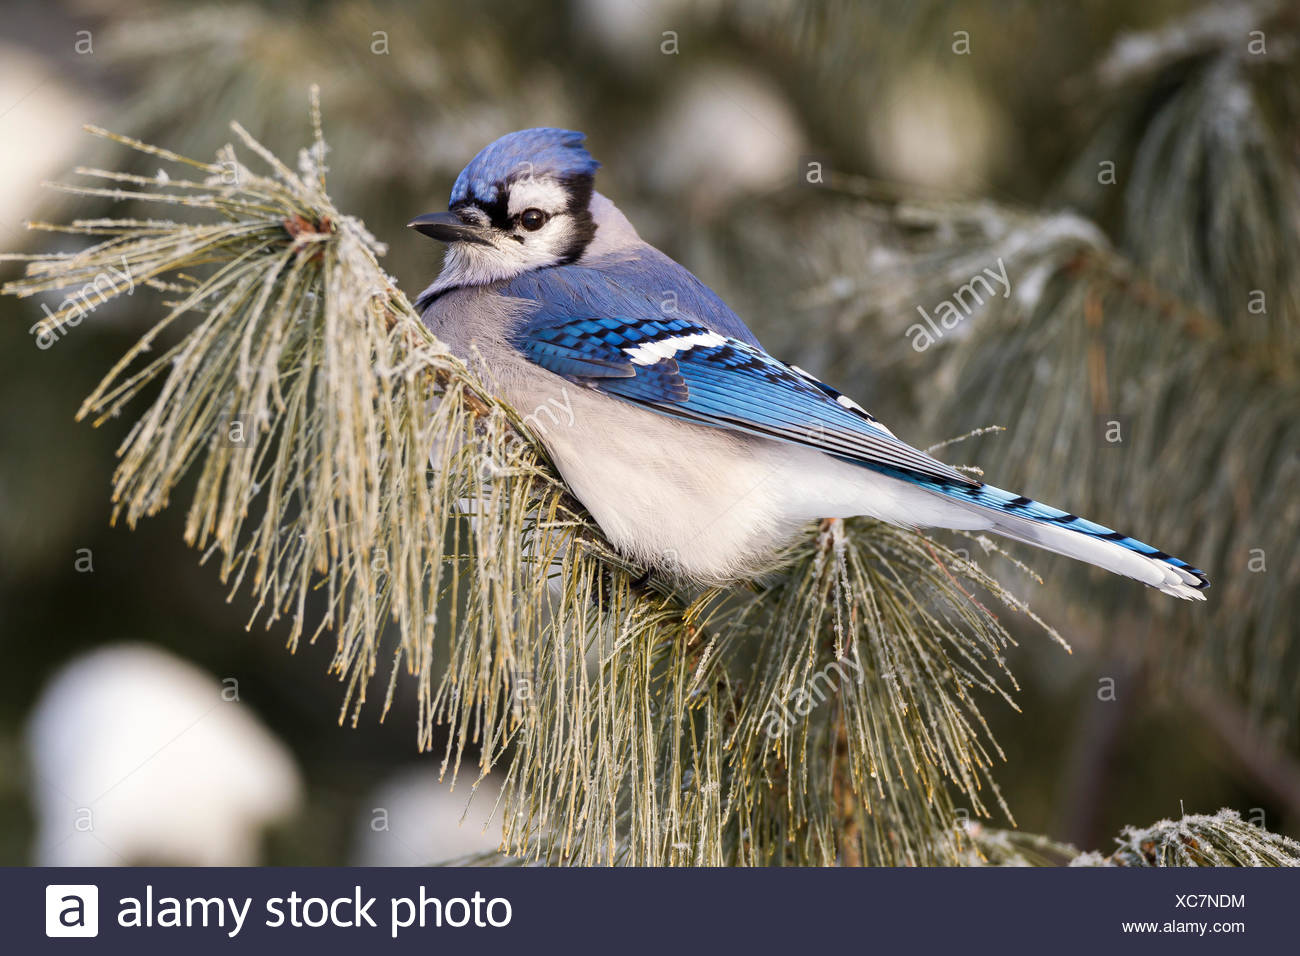 Blue Jay (Cyanocitta cristata) in a frosted pine tree in Algonquin Provincial Park, Ontario, Canada - Stock Image